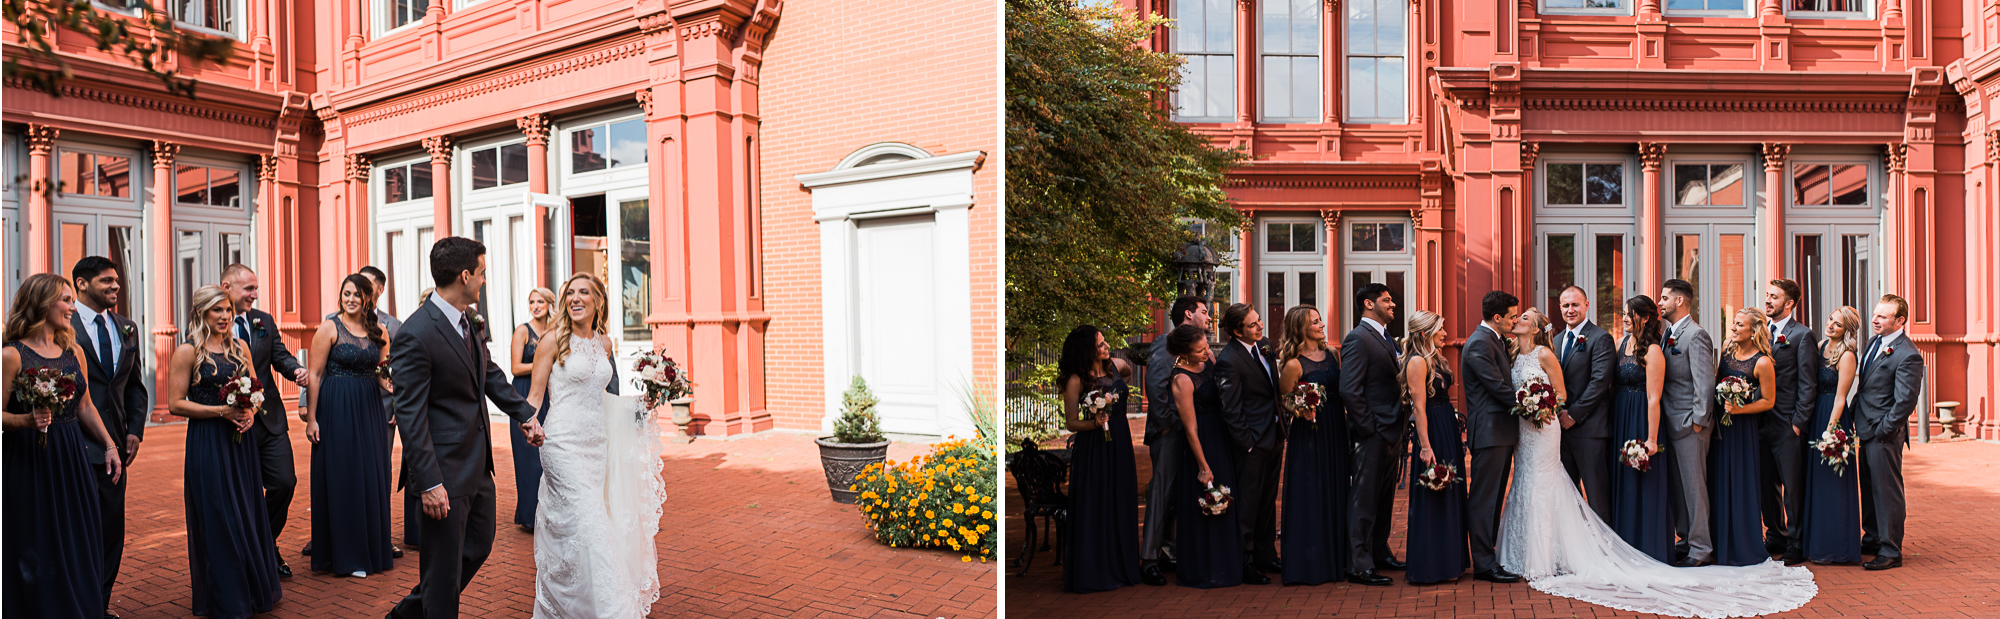 Kait Bailey Photography Baltimore Wedding Photographer 1840s Plaza Wedding